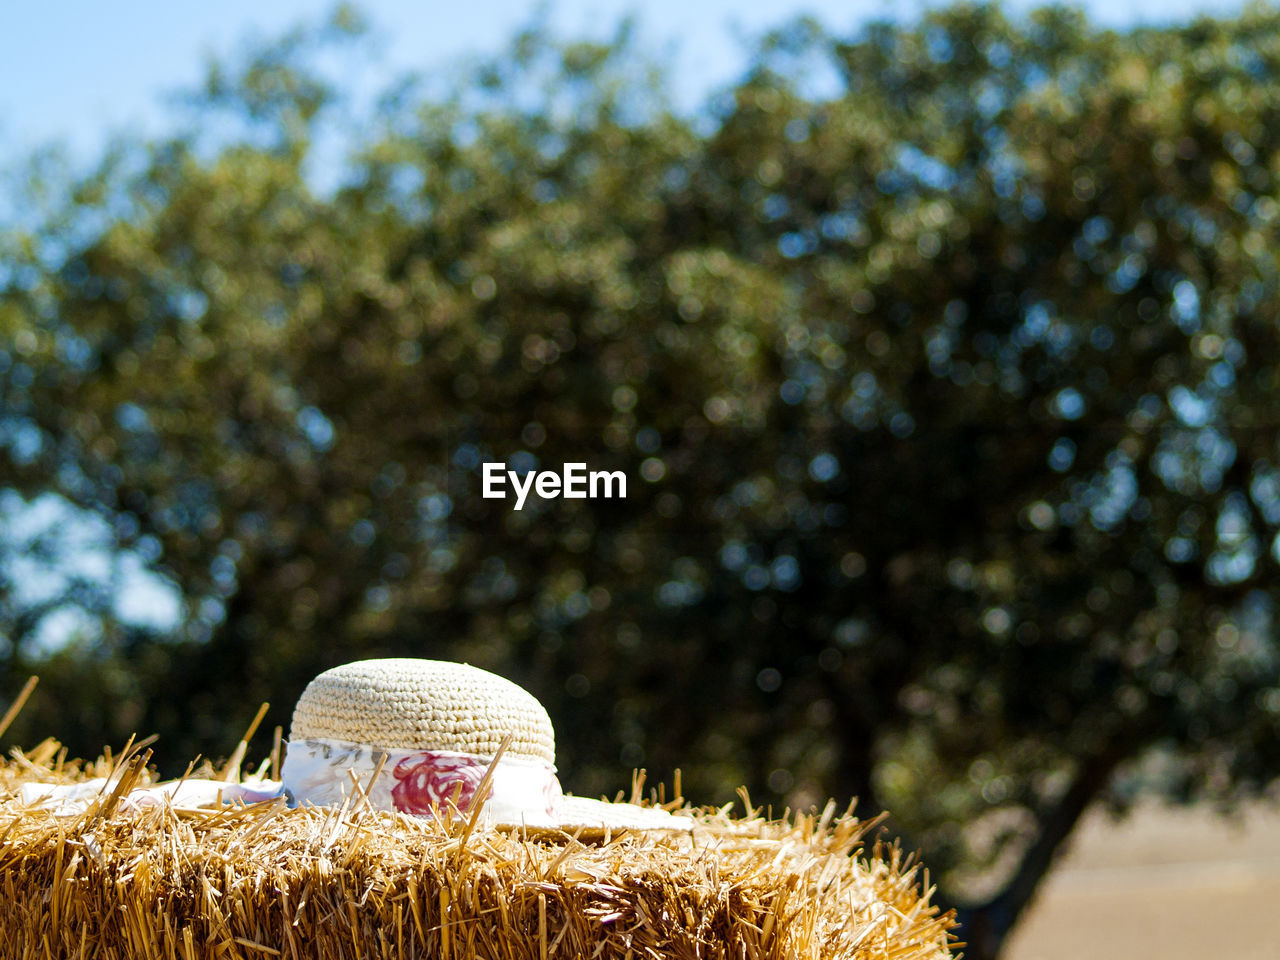 hat, day, plant, sunlight, nature, tree, focus on foreground, land, outdoors, clothing, no people, growth, field, farm, close-up, agriculture, straw hat, sunny, hay, sky